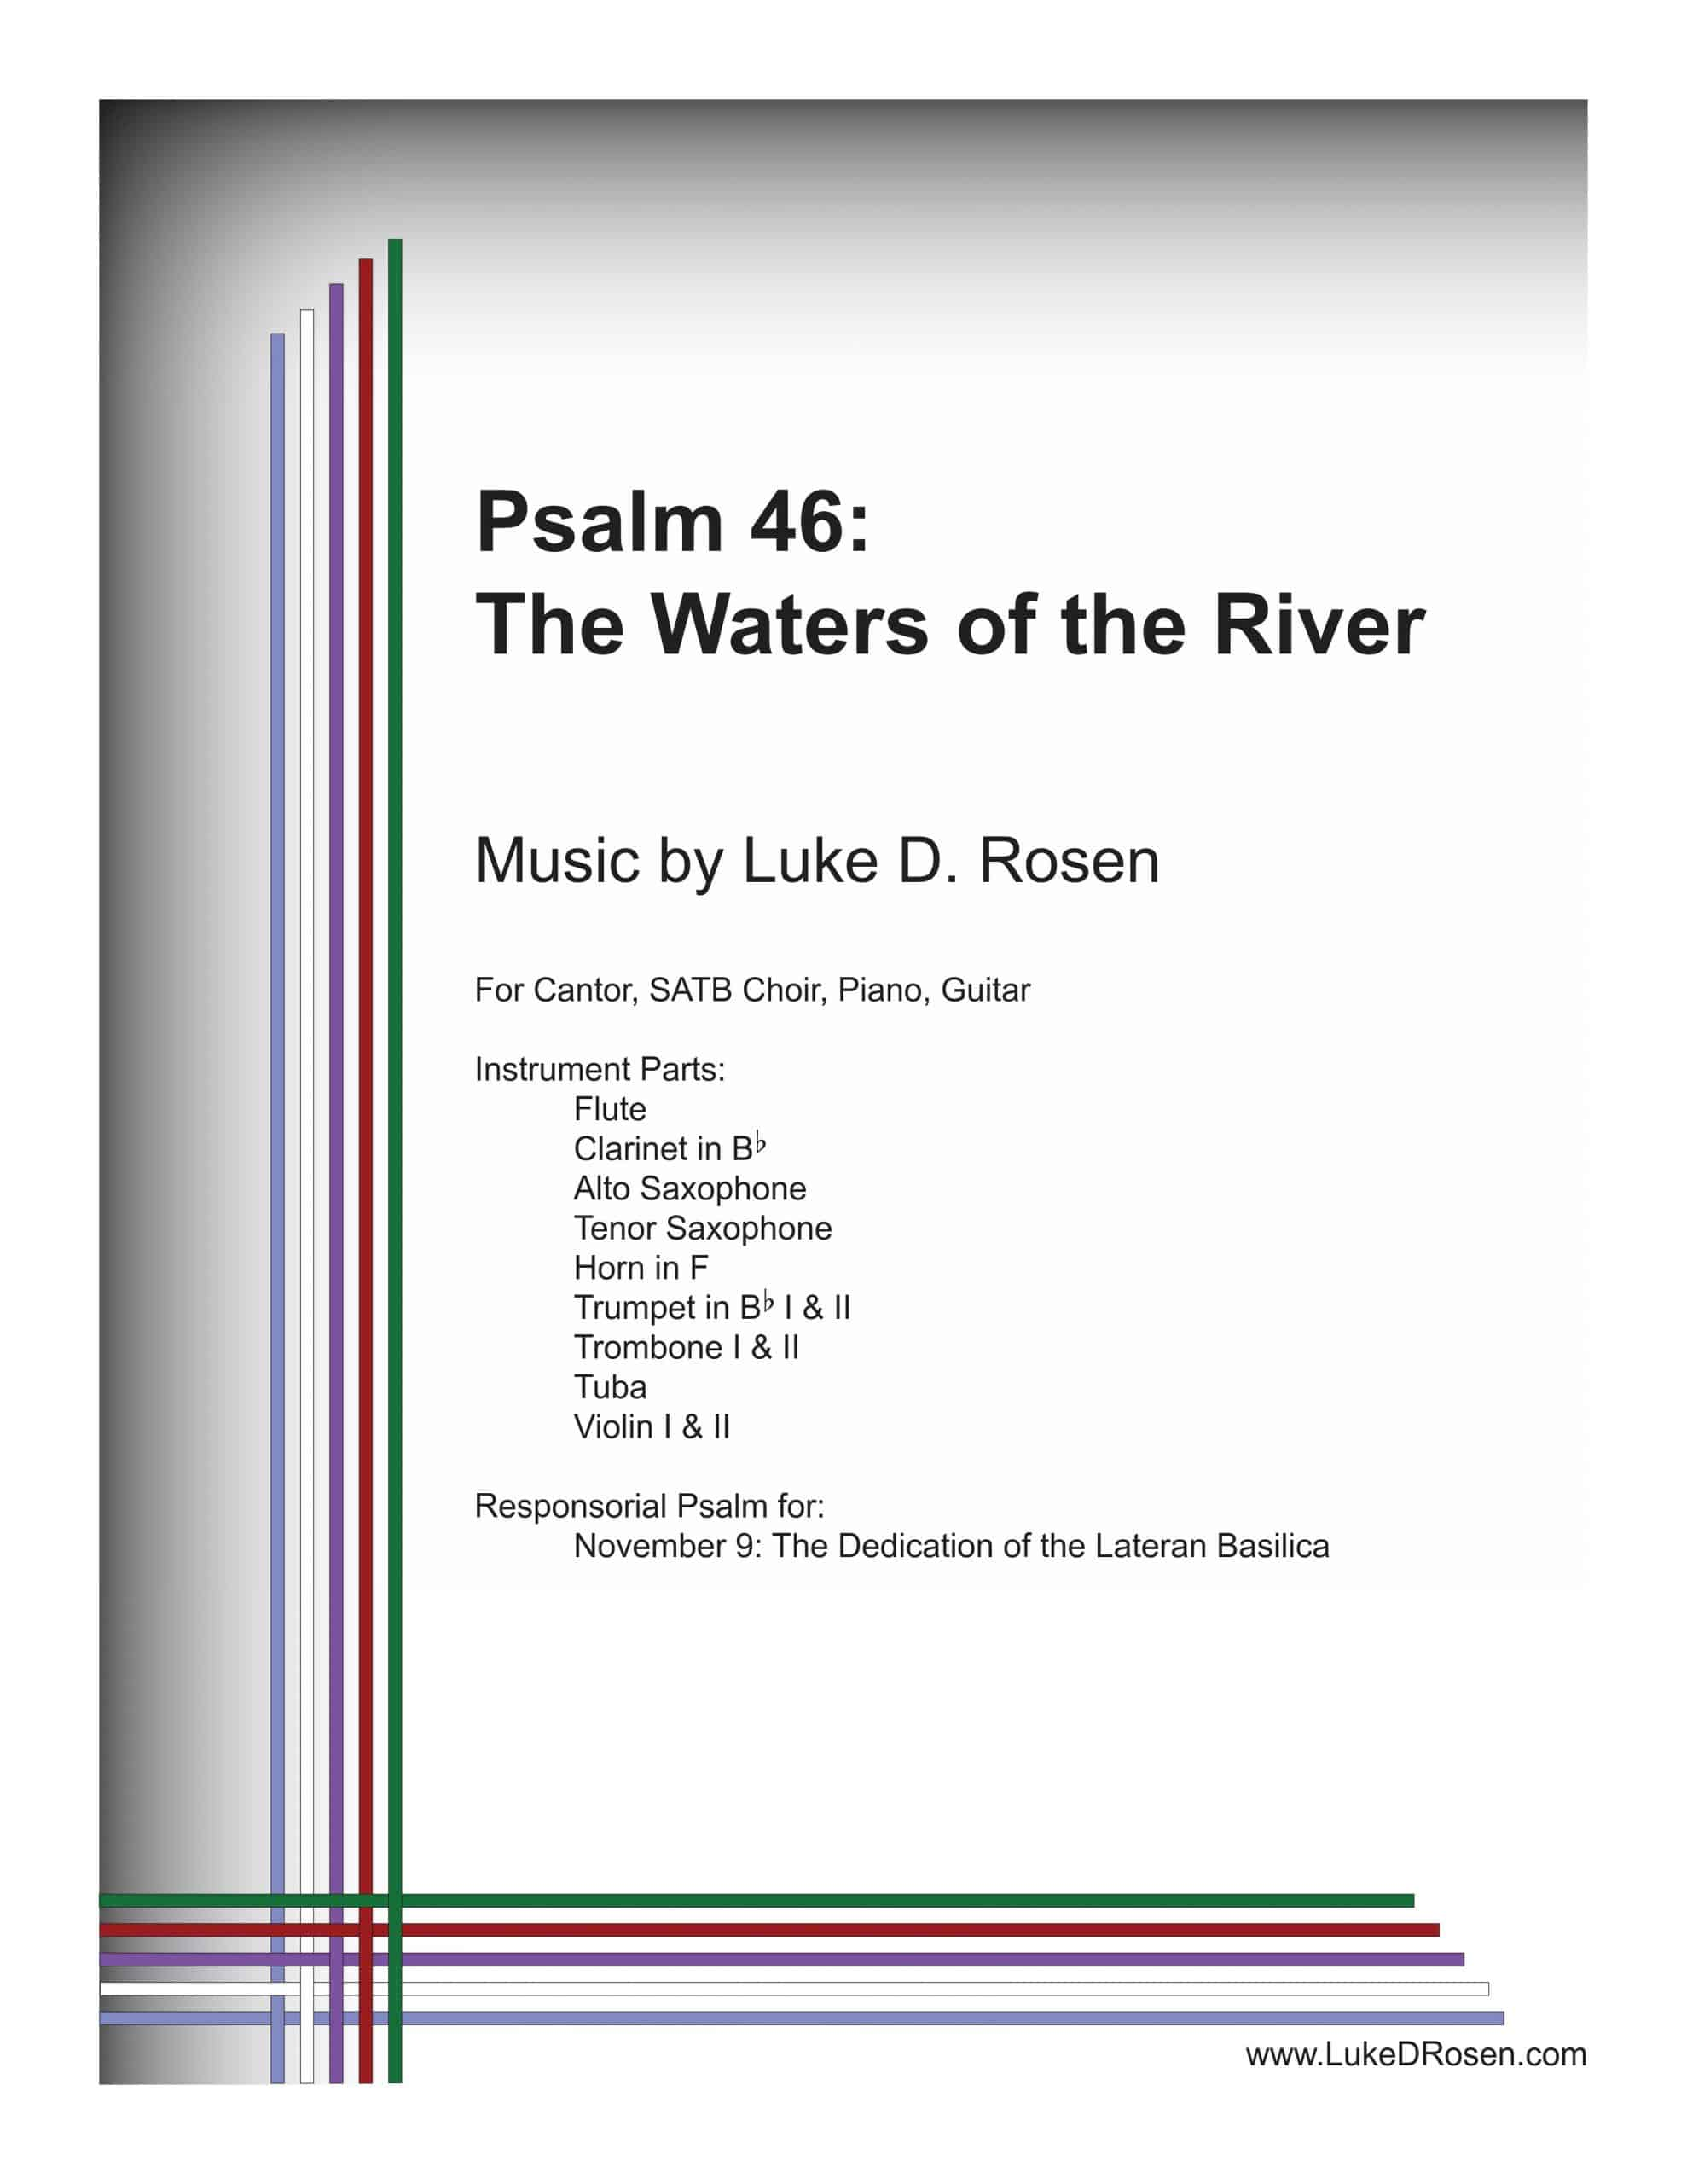 Psalm 46 The Waters of the River ROSEN Sample Complete PDF scaled